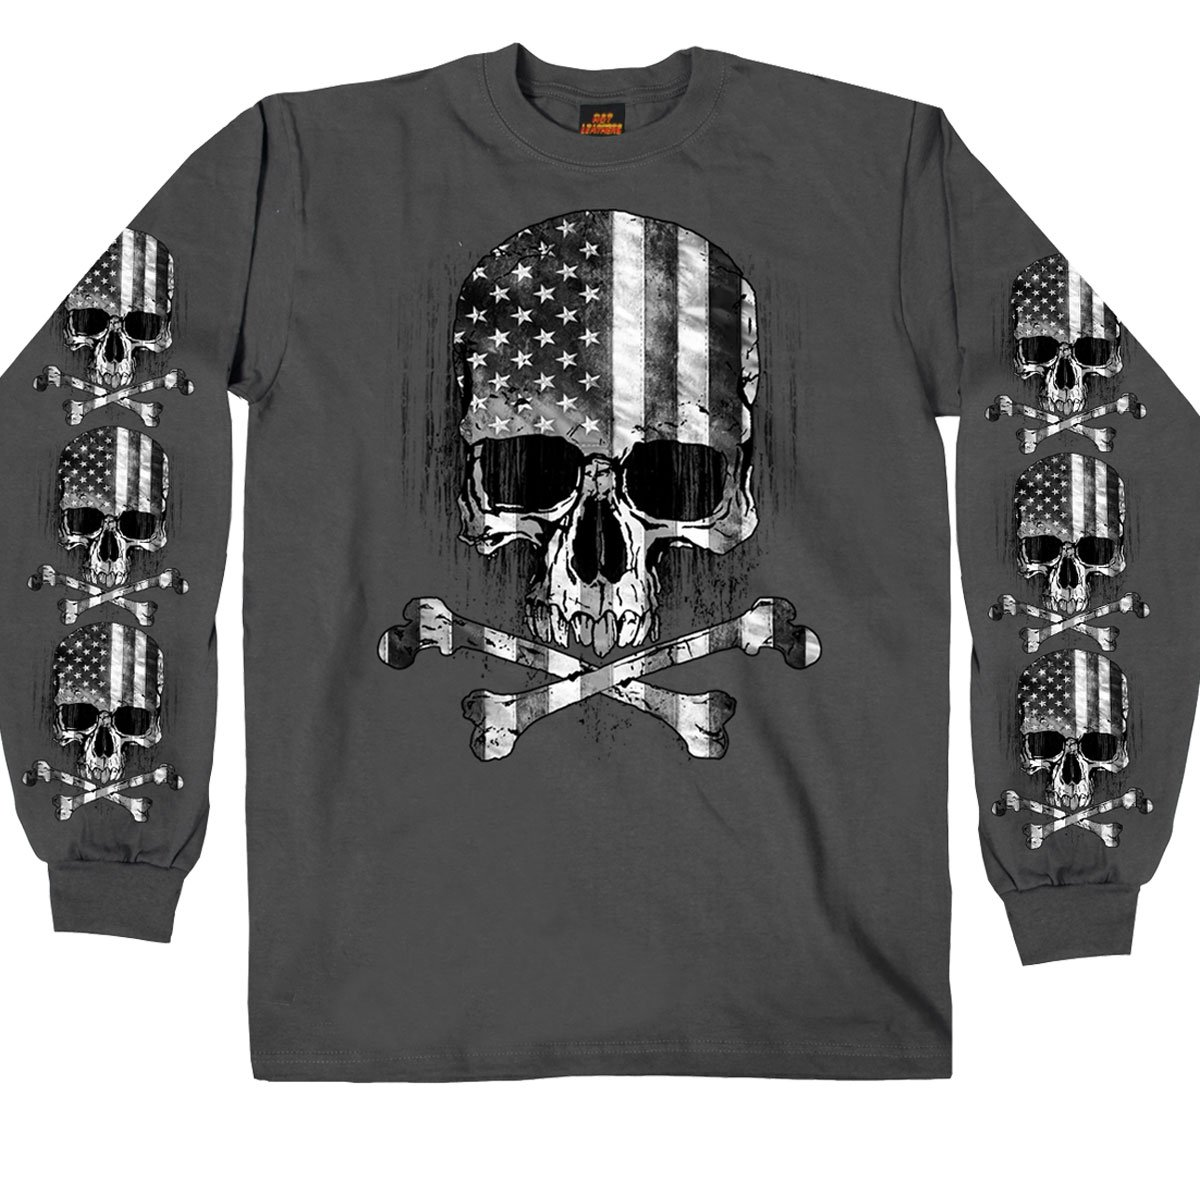 Hot Leathers Men's Long Sleeve Flag Skull Shirt (Charcoal, X-Large) GMS2391-9908